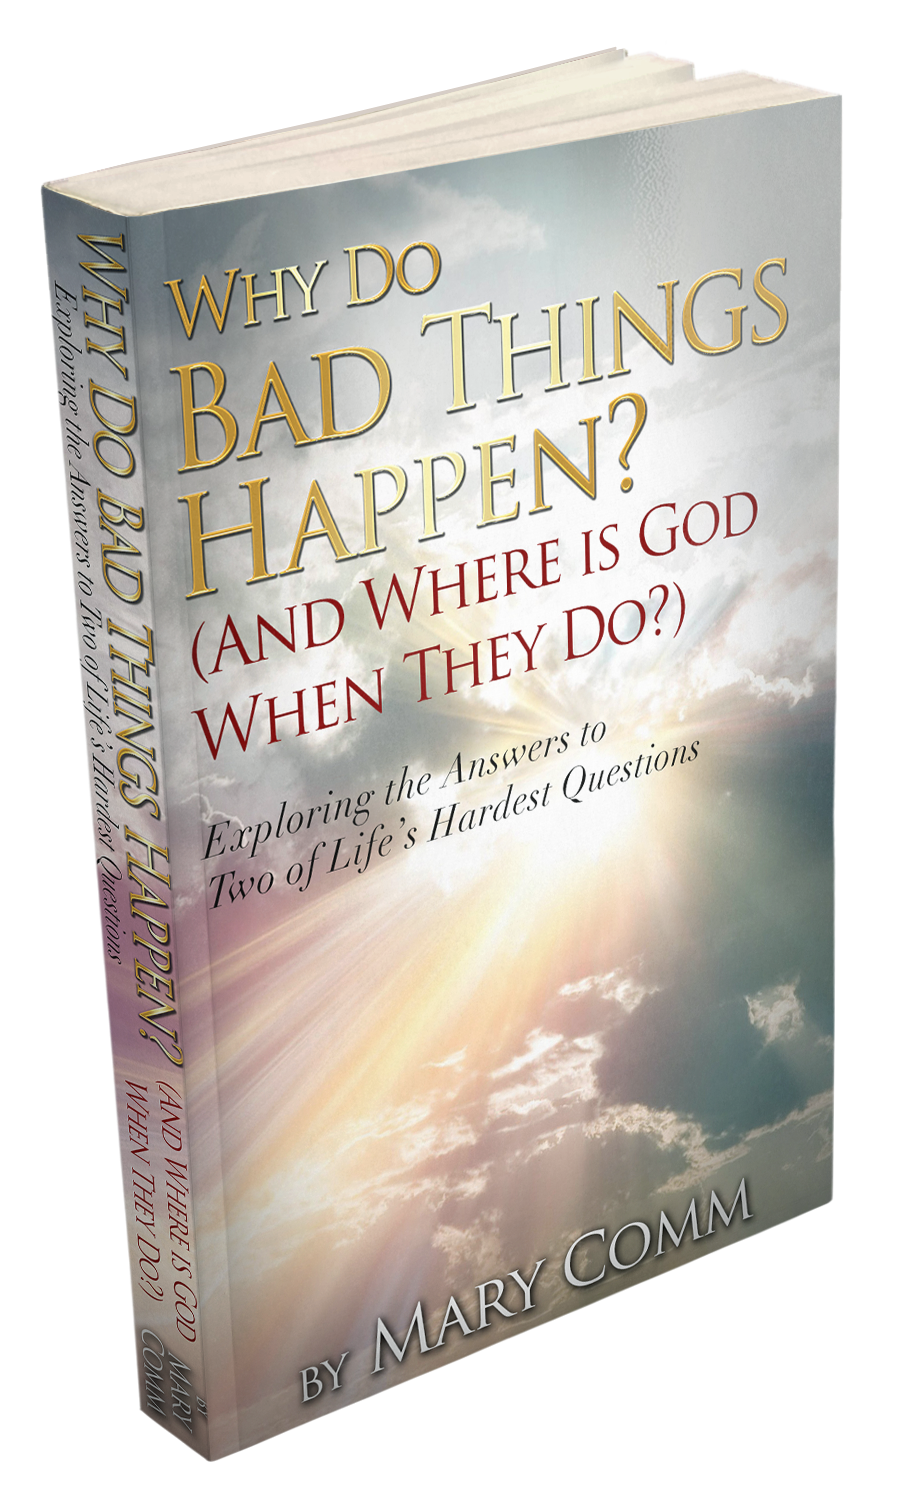 Why Do Bad Things Happen? (And Where Is God When They Do?)